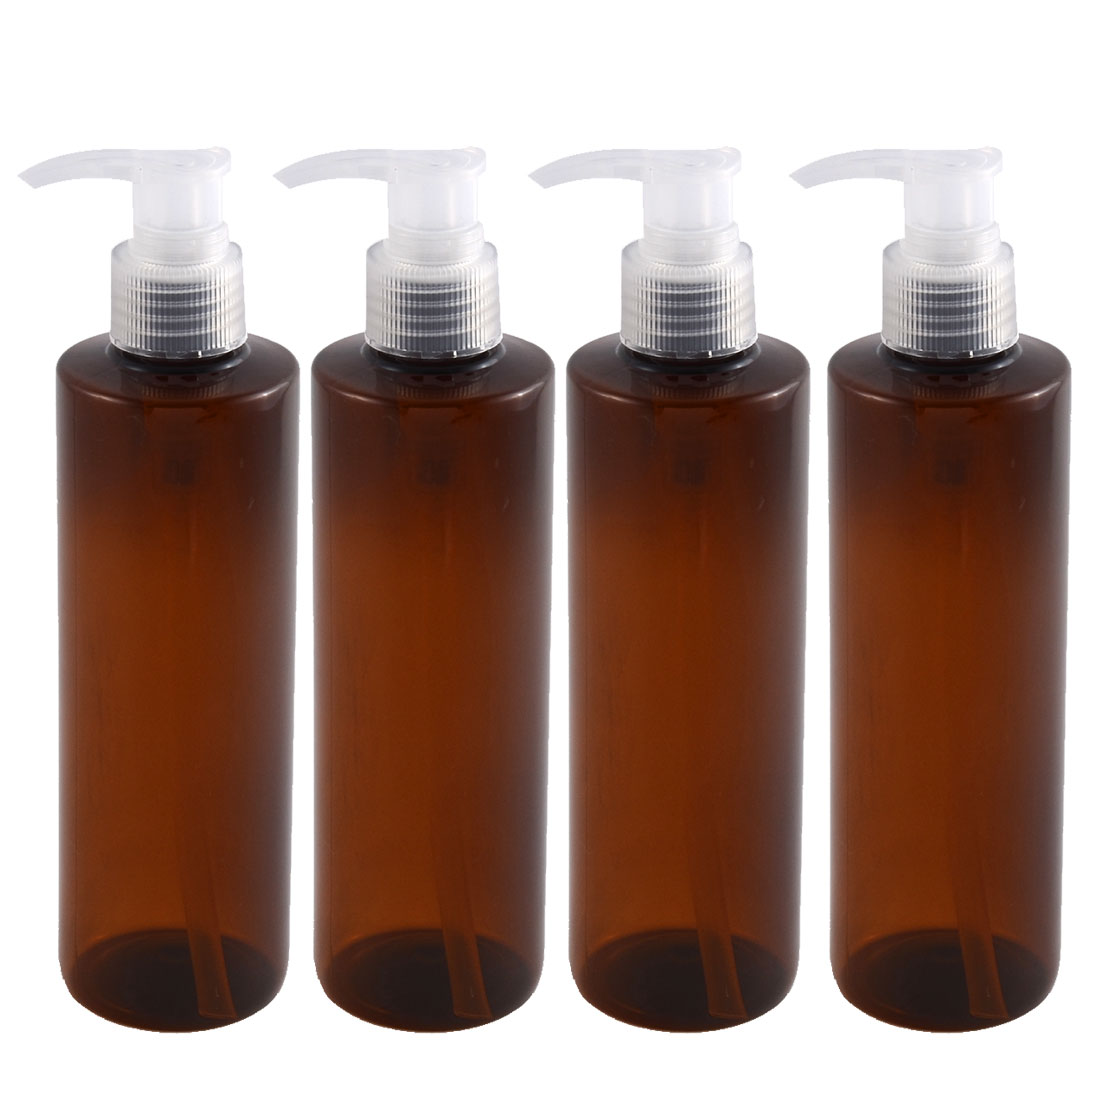 Traveling Woman Plastic Shampoo Cosmetic Emulsion Spray Press Bottle Brown 250ml 4pcs